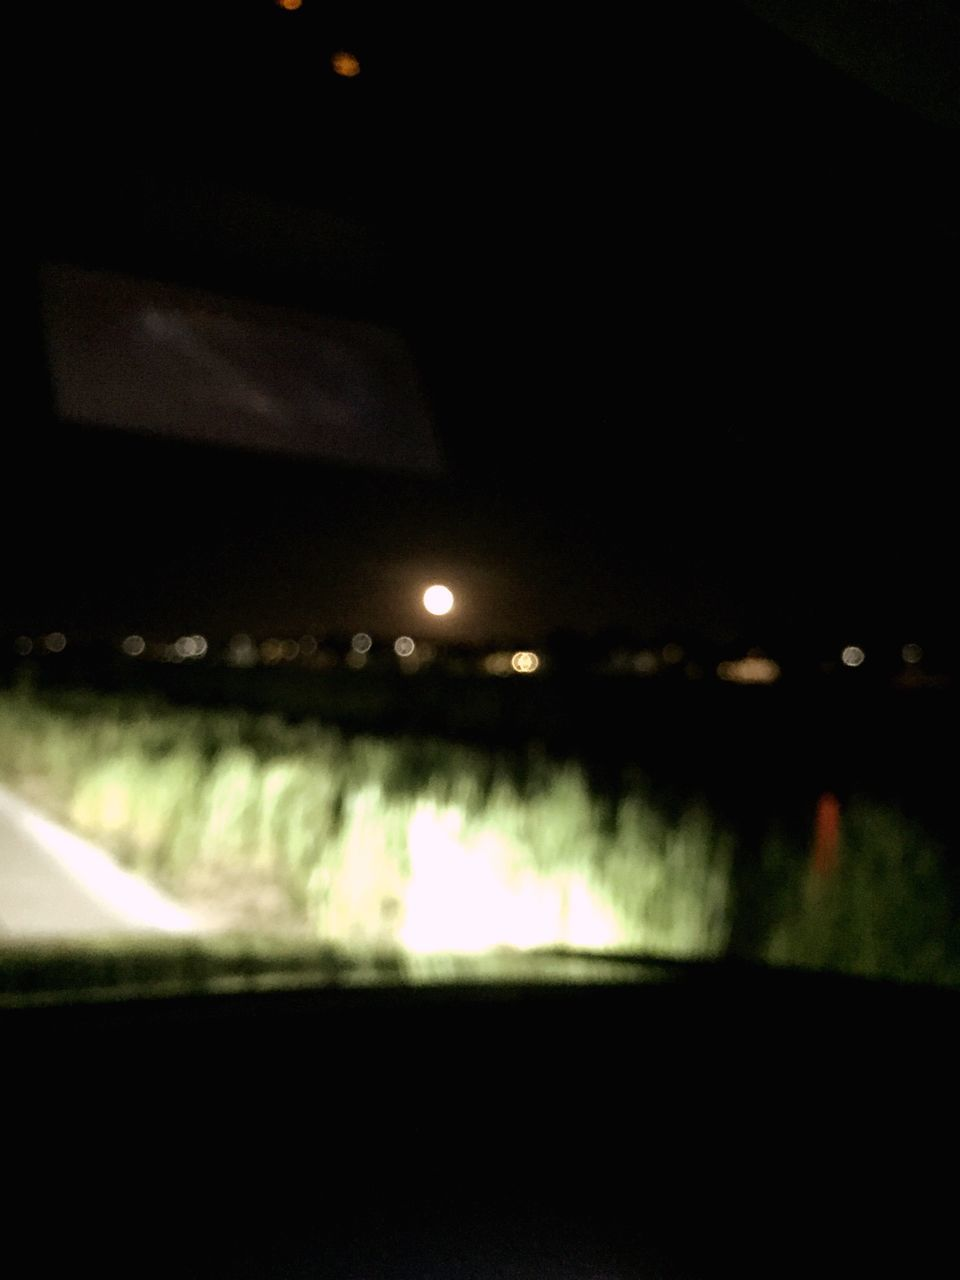 night, illuminated, lens flare, lighting equipment, transportation, no people, car, road, outdoors, defocused, nature, sky, beauty in nature, close-up